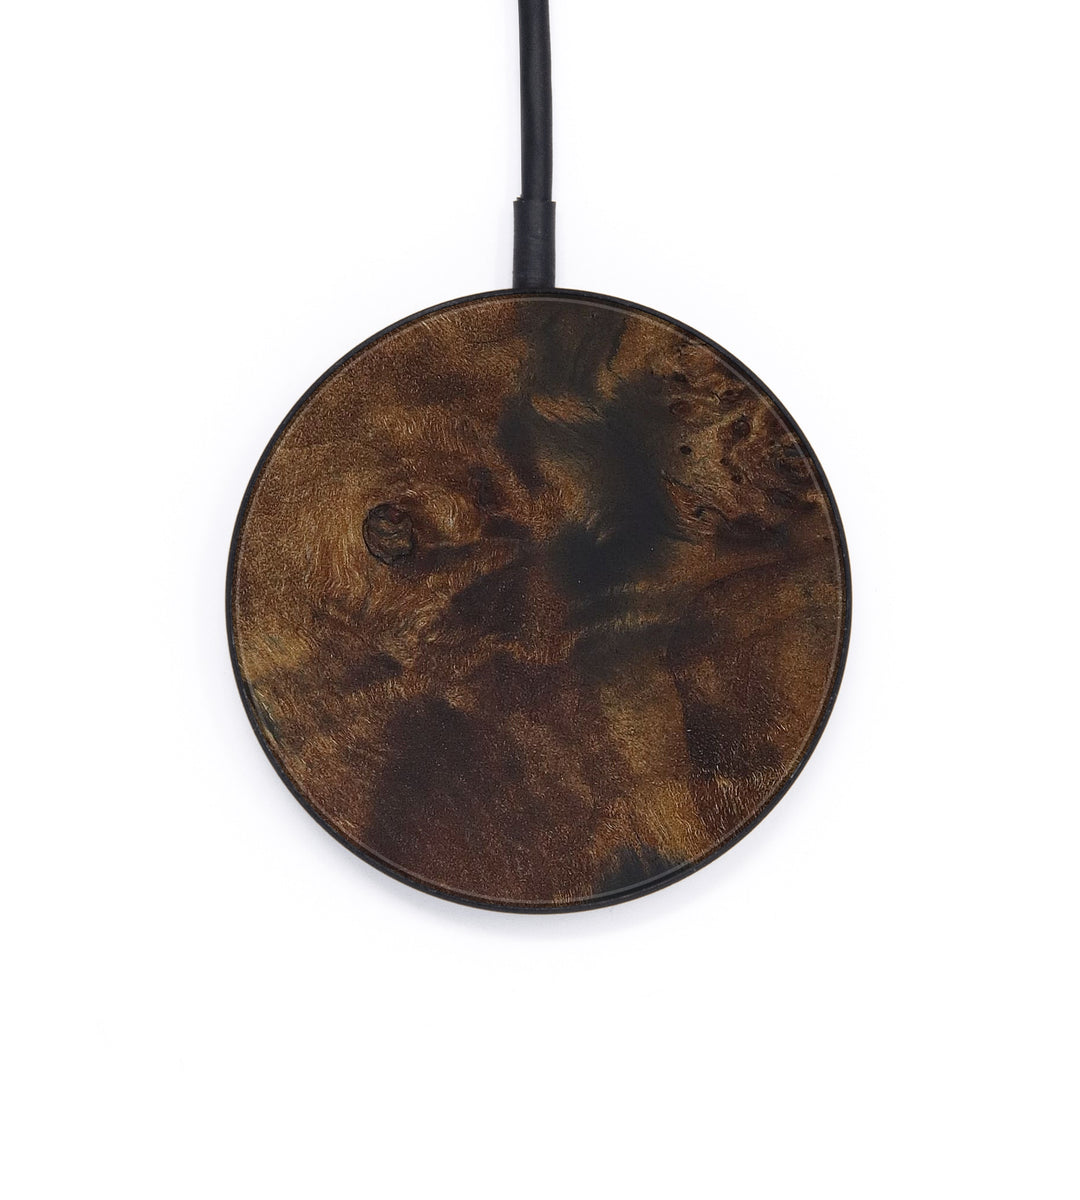 Circle Burl Wood Wireless Charger - Mariele (Maple Burl, 408763)